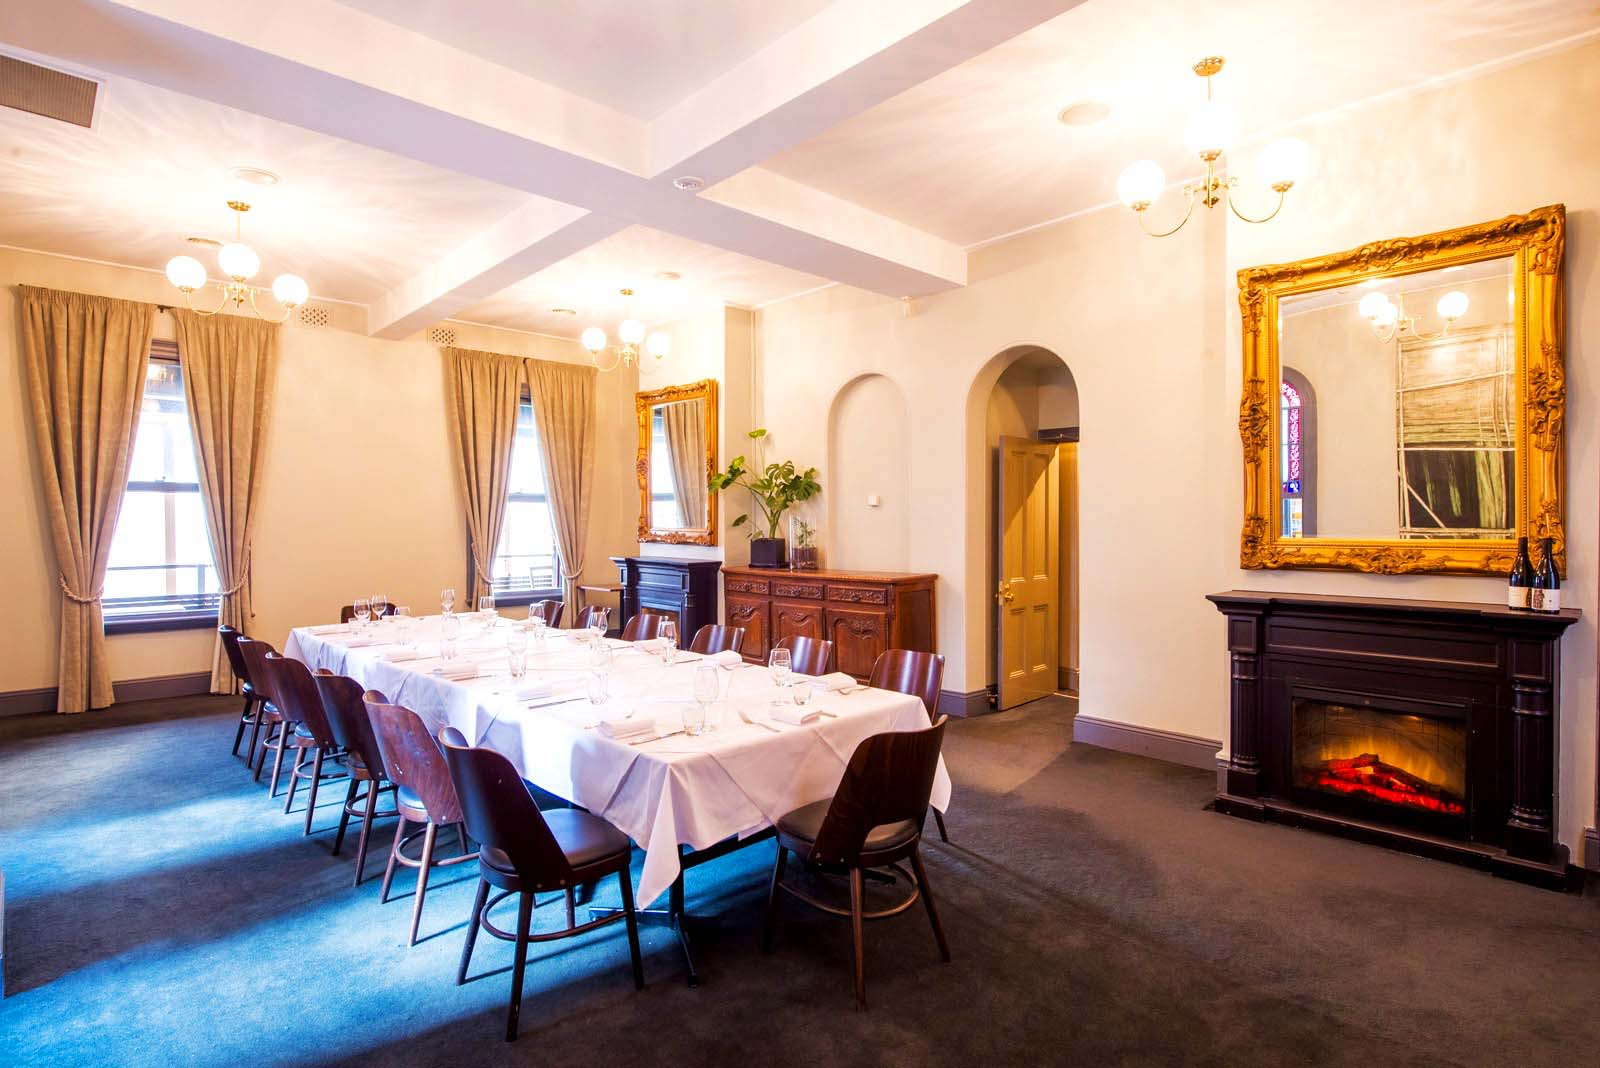 Collins quarter unique cbd venue hire hidden city secrets for Dining room 211 melbourne